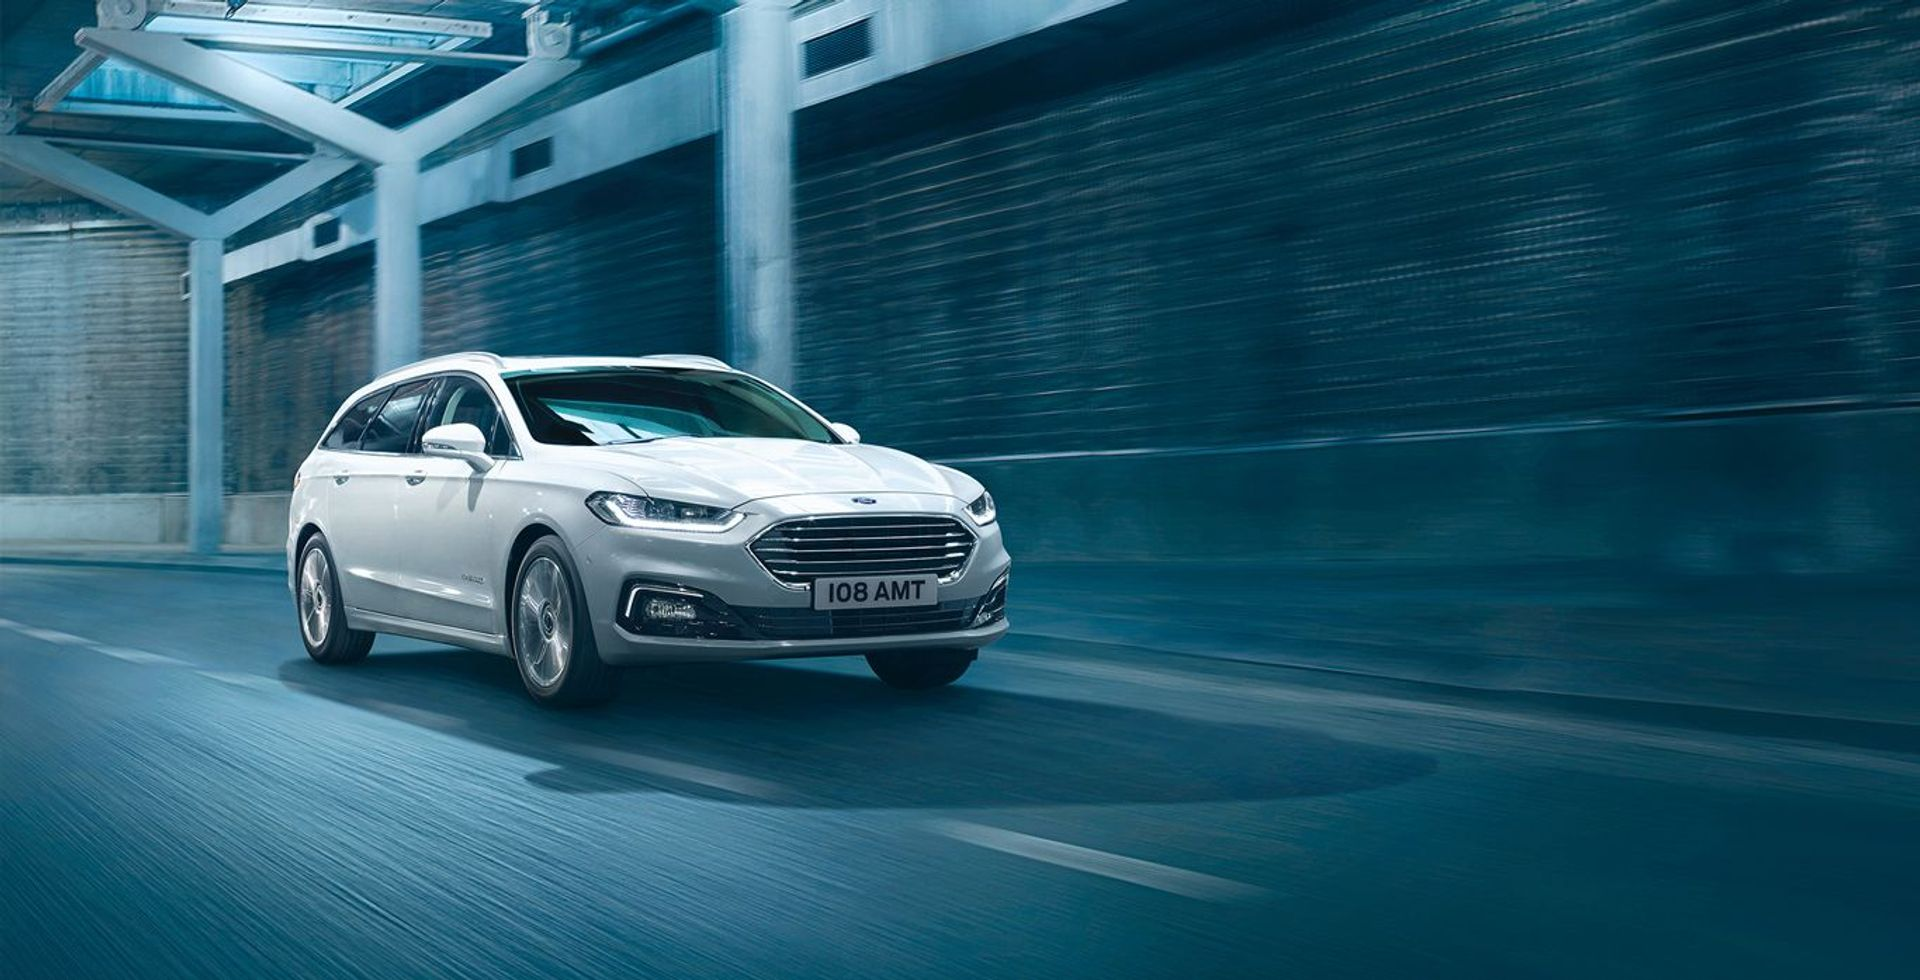 Ford Mondeo TiVCT image